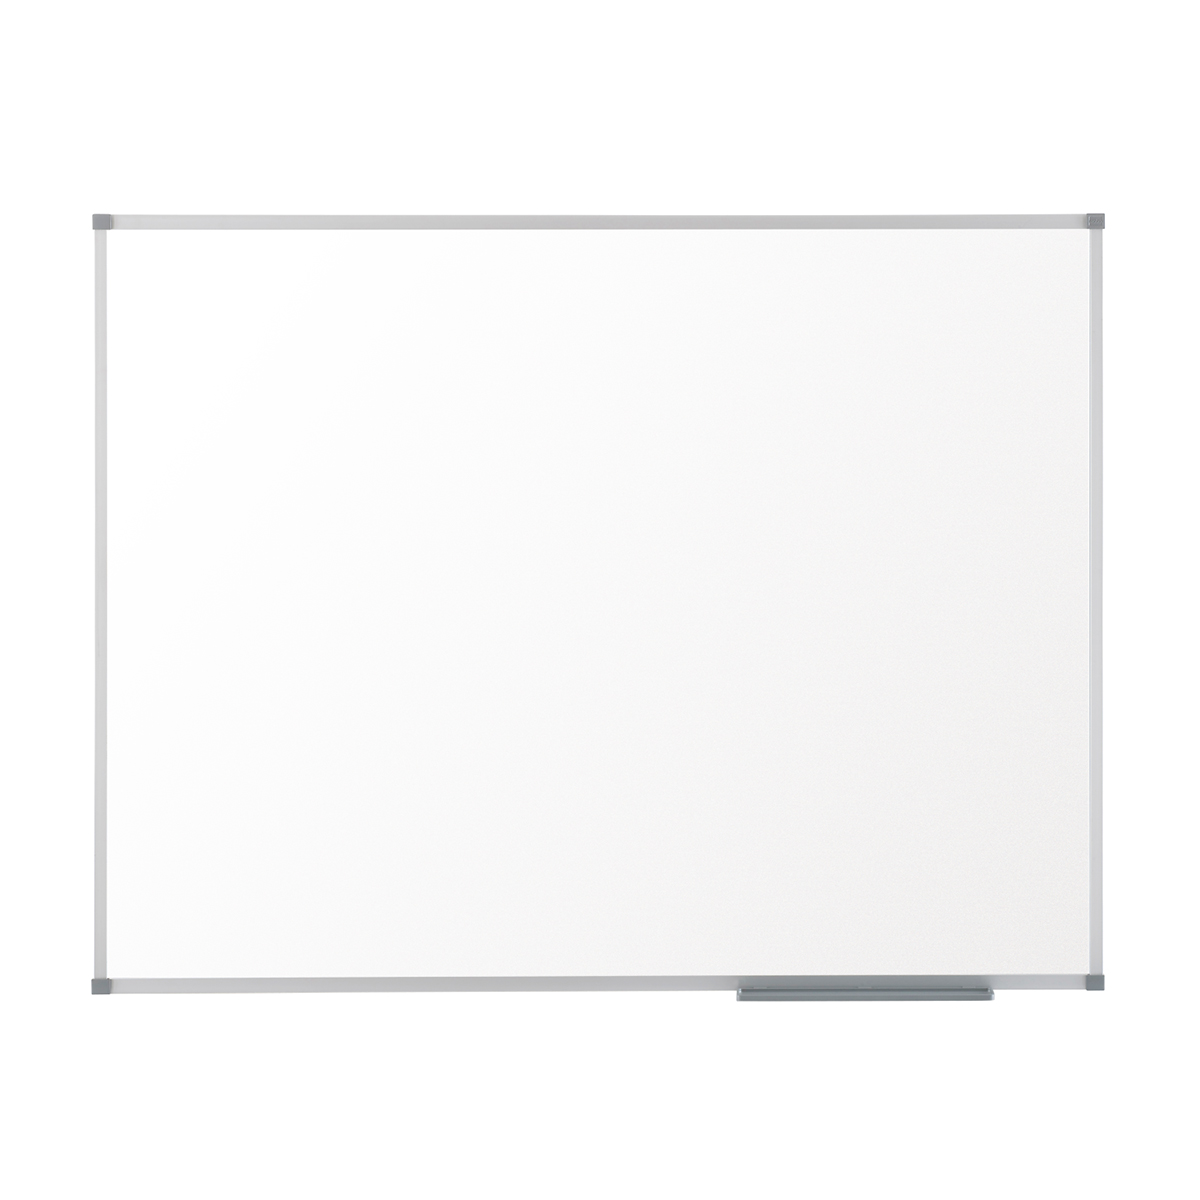 Nobo 1905211 Basic Steel Magnetic Whiteboard 1200 x 900mm